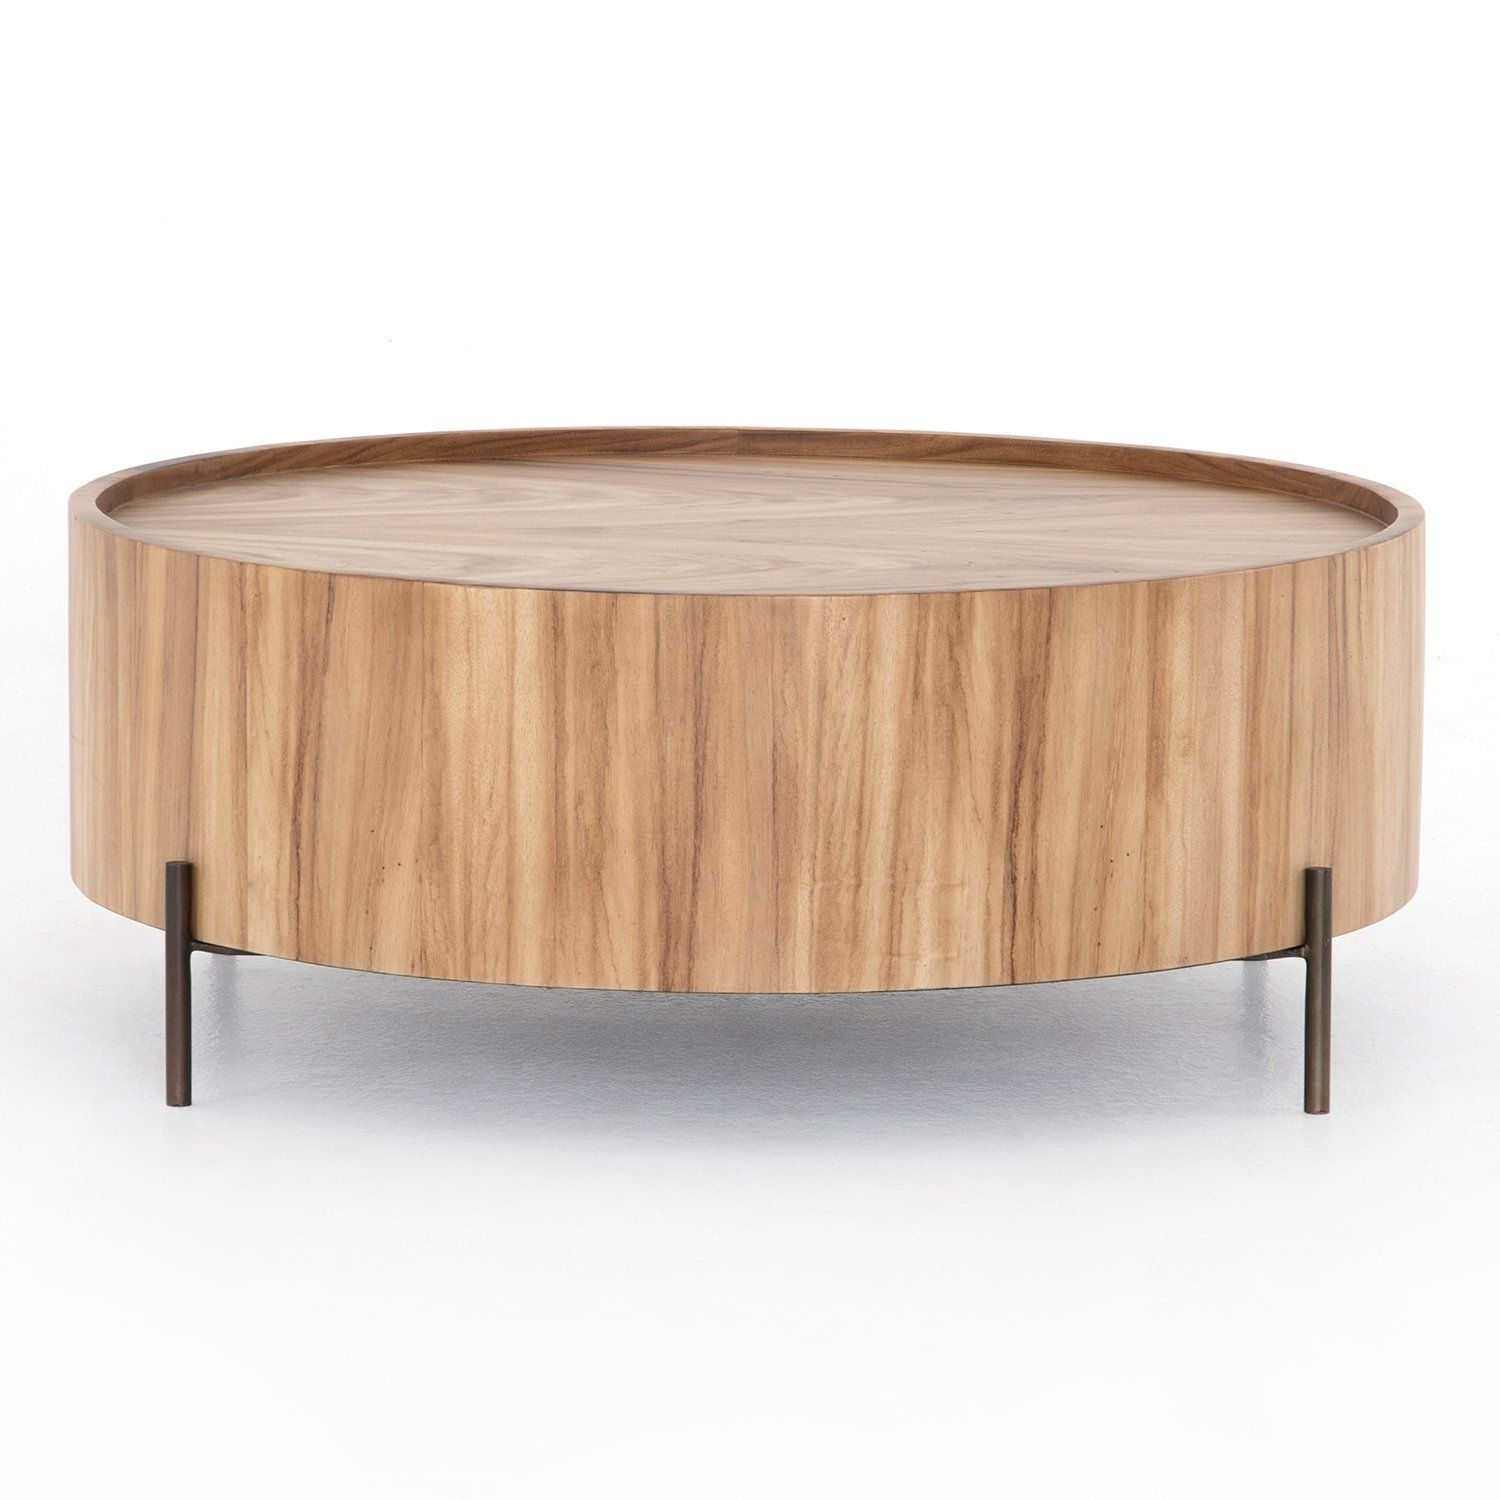 Four Hands Lunas Drum Coffee Table In 2021 Drum Coffee Table Coffee Table Drum Table [ 1500 x 1500 Pixel ]